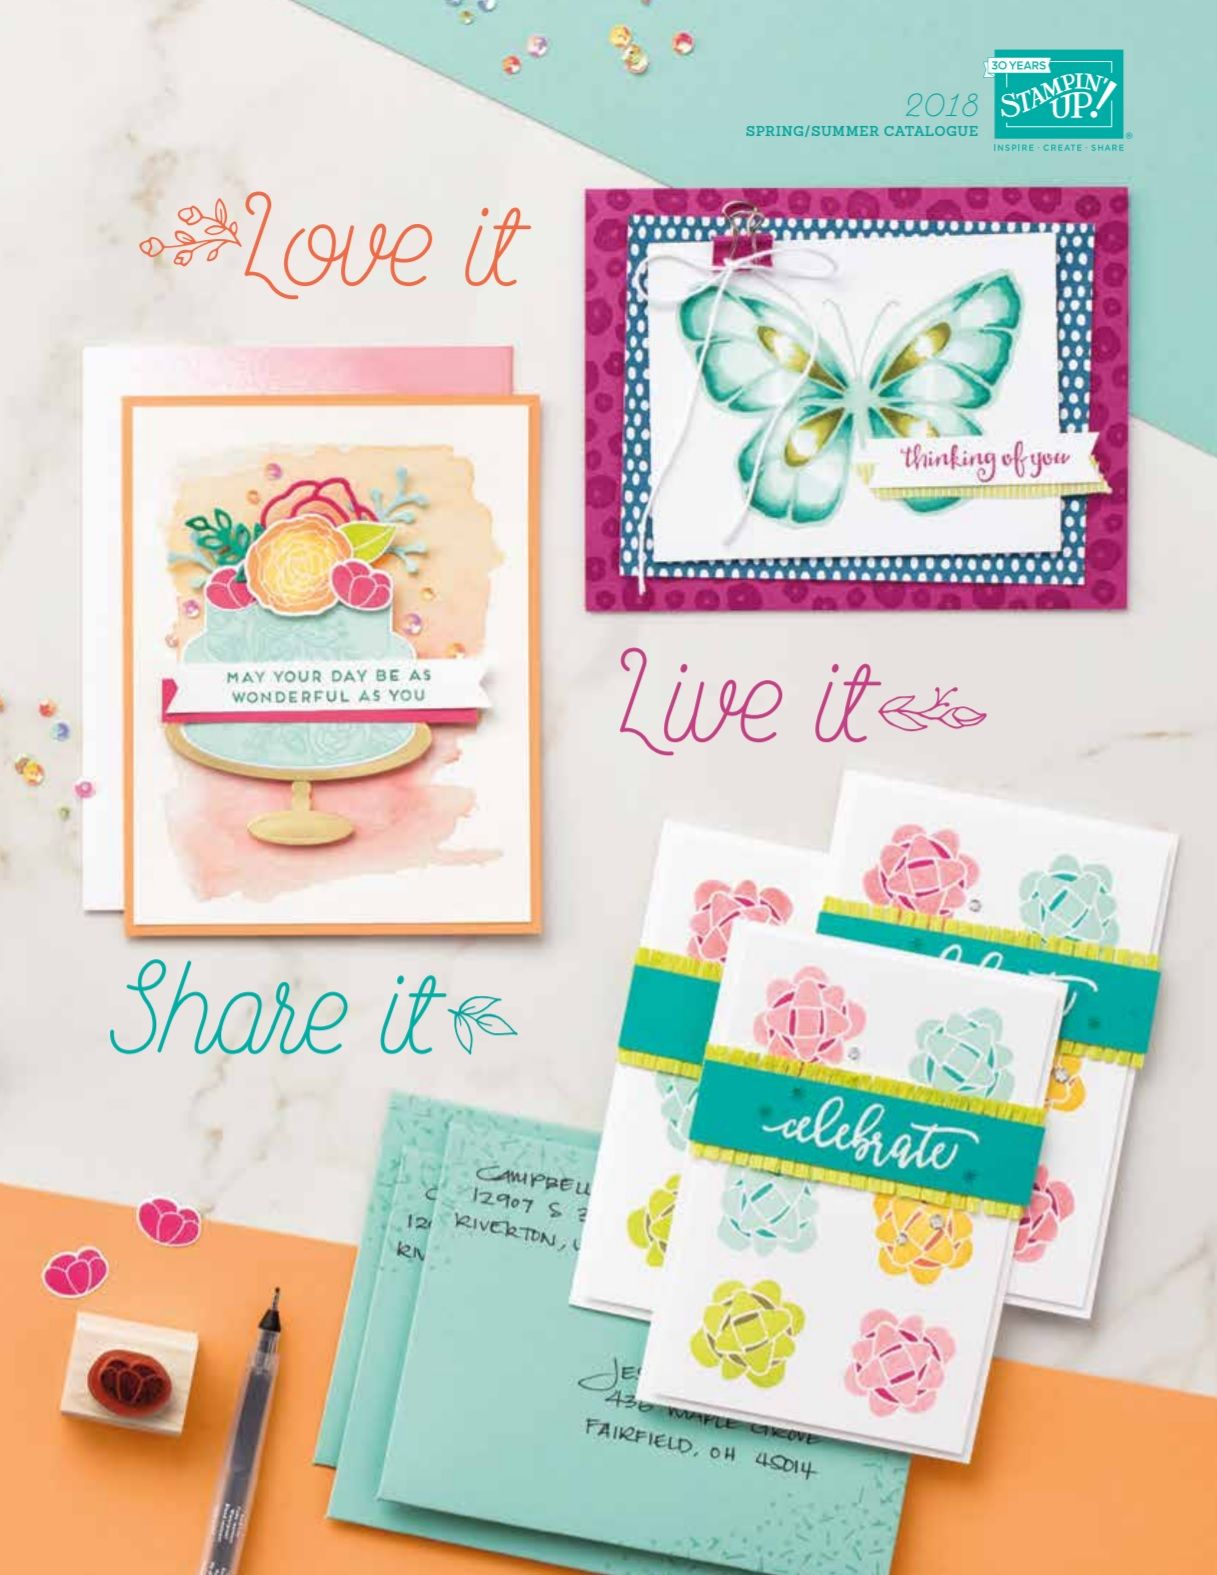 Who wants a free copy of the new spring summer catalogue and sale who wants a free copy of the new spring summer catalogue and sale a bration brochure kristyandbryce Images